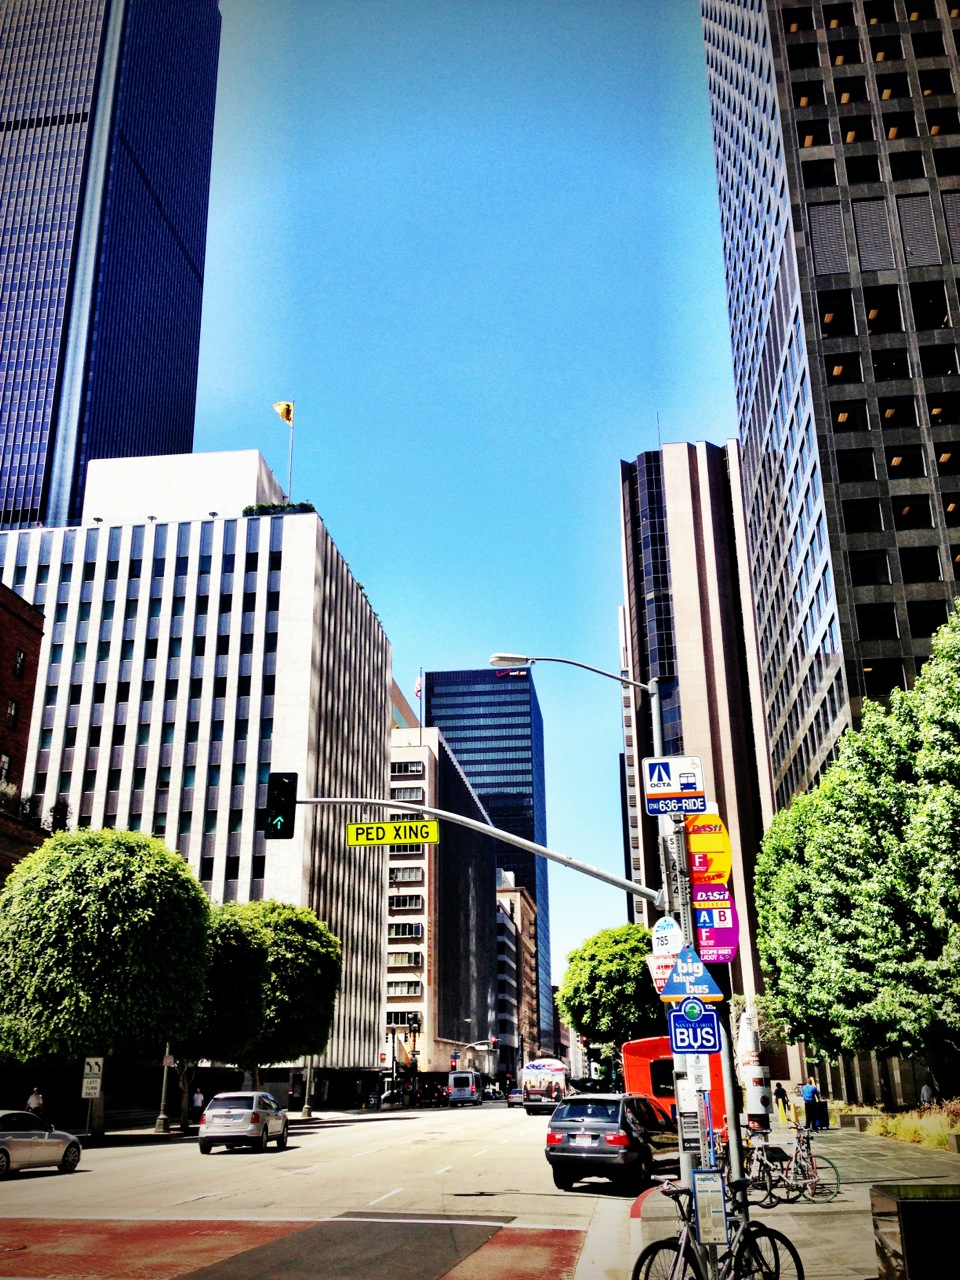 Los Angeles: By Bus